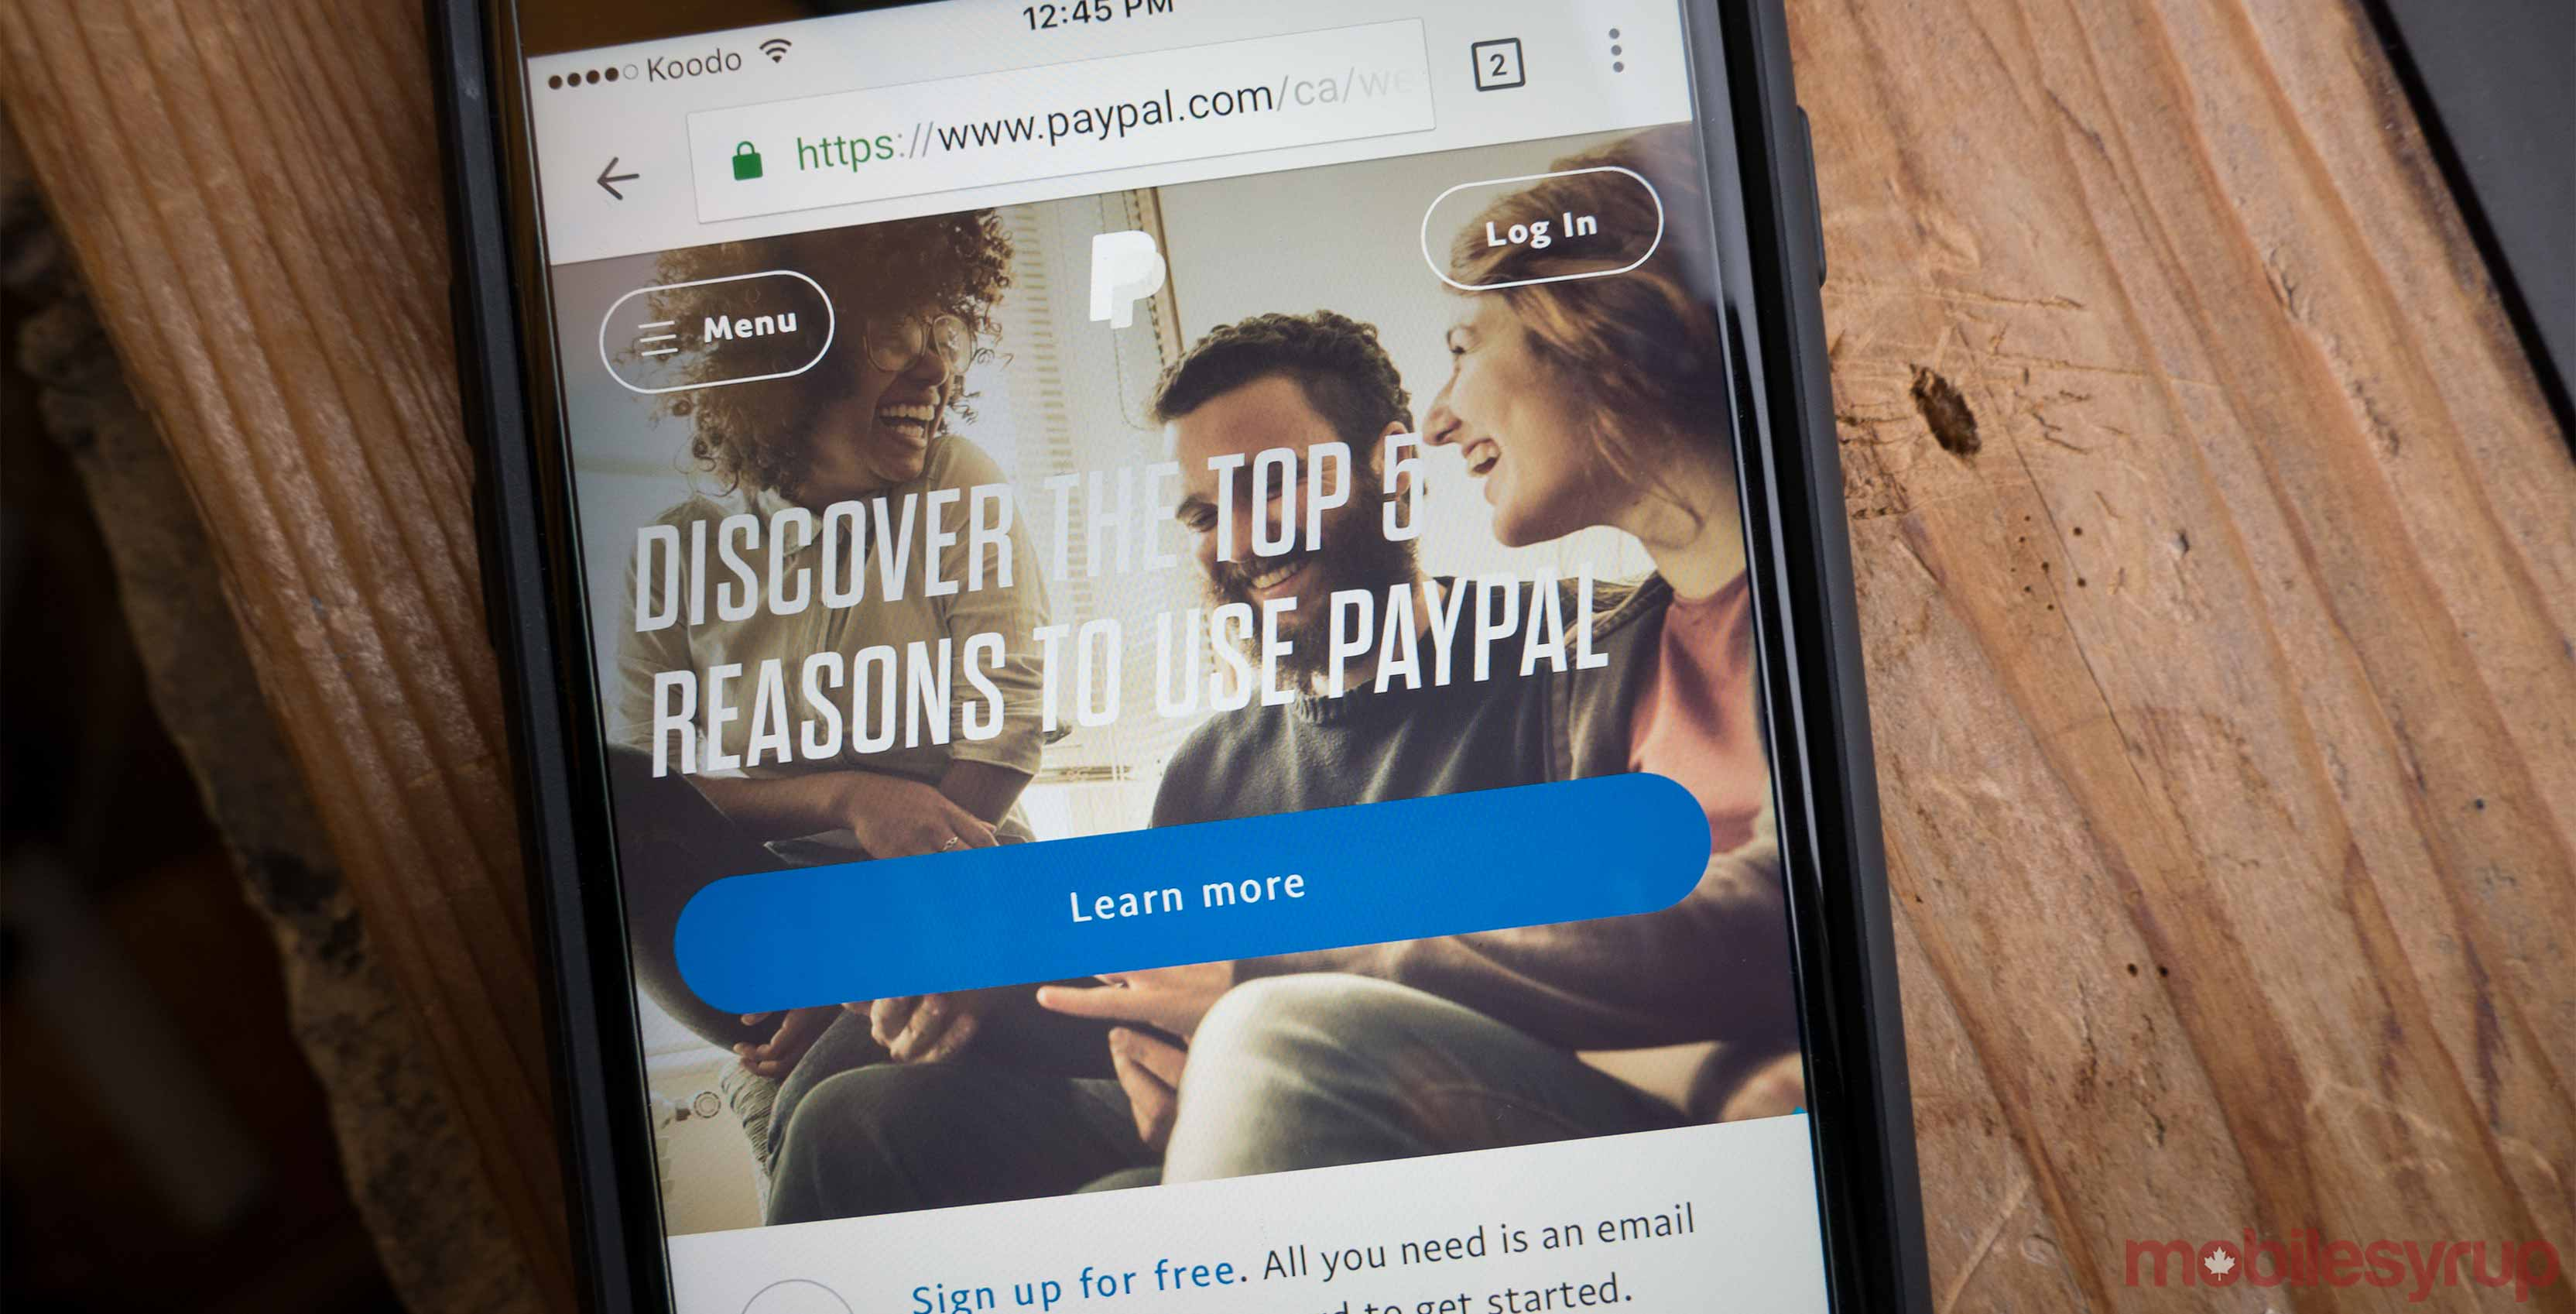 Paypal home page on a smartphone - peer-to-peer payments